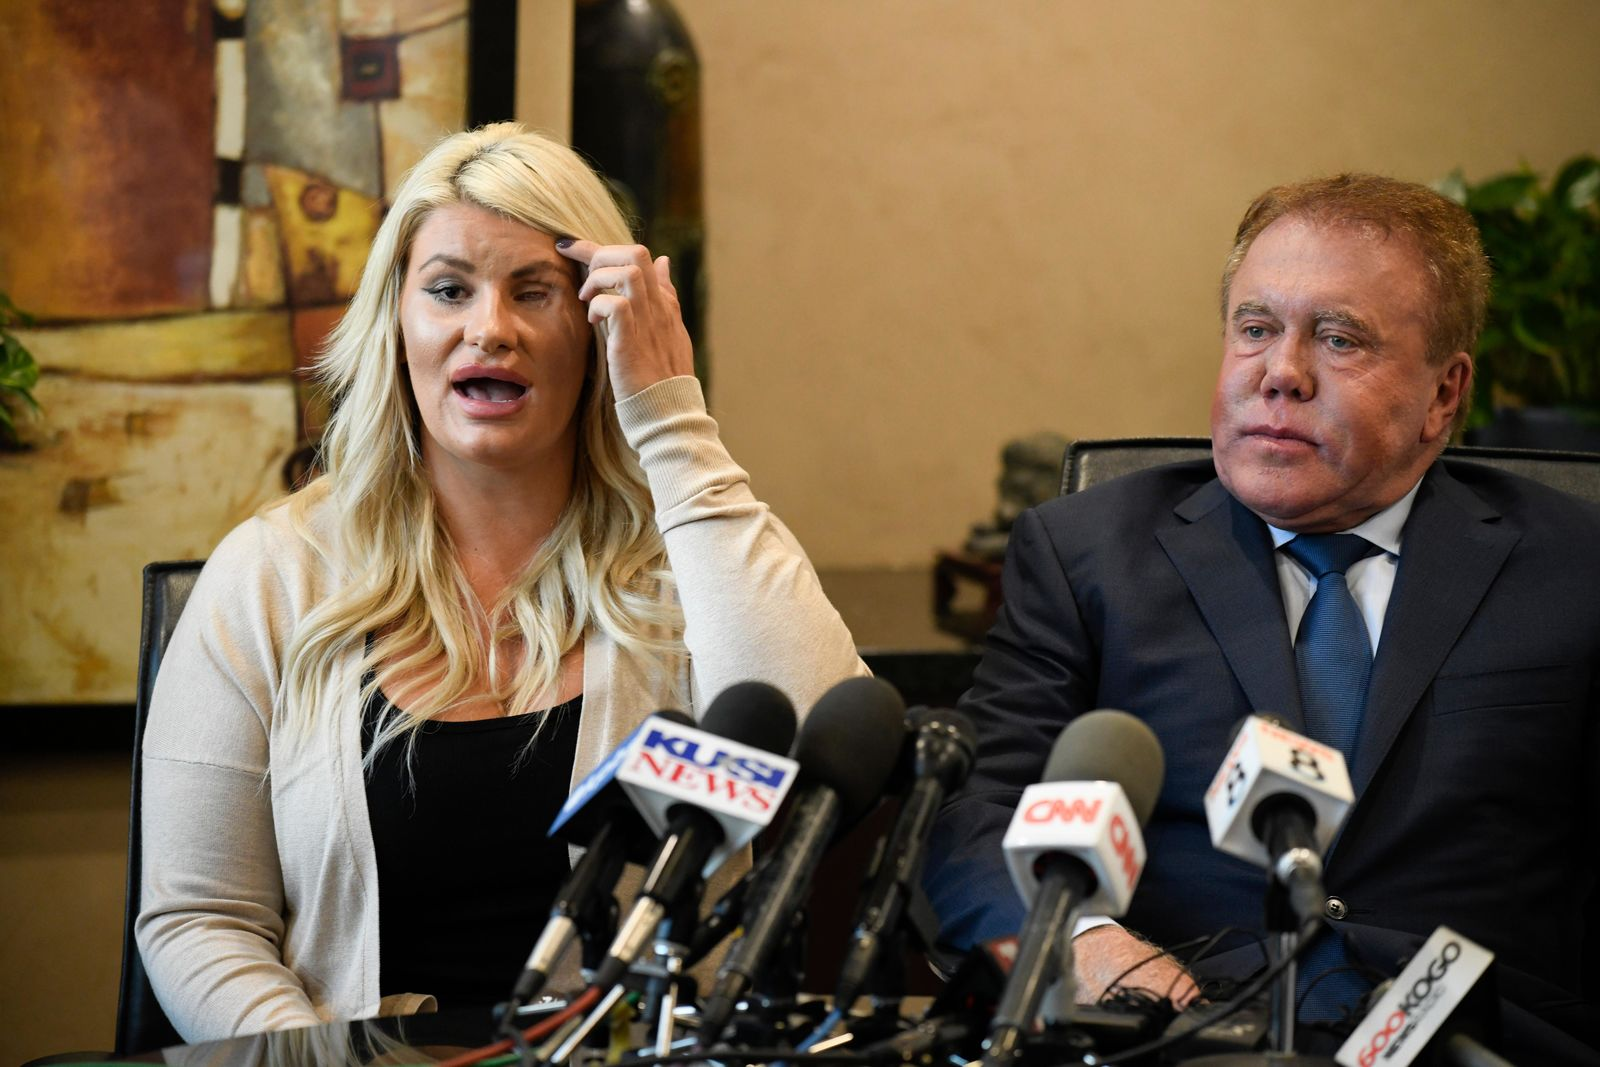 Chelsea Romo, left, pulls the her hair out of the way to show her left eye at a news conference as her attorney James Frantz looks on Thursday, Oct. 3, 2019, in San Diego. (AP Photo/Denis Poroy)